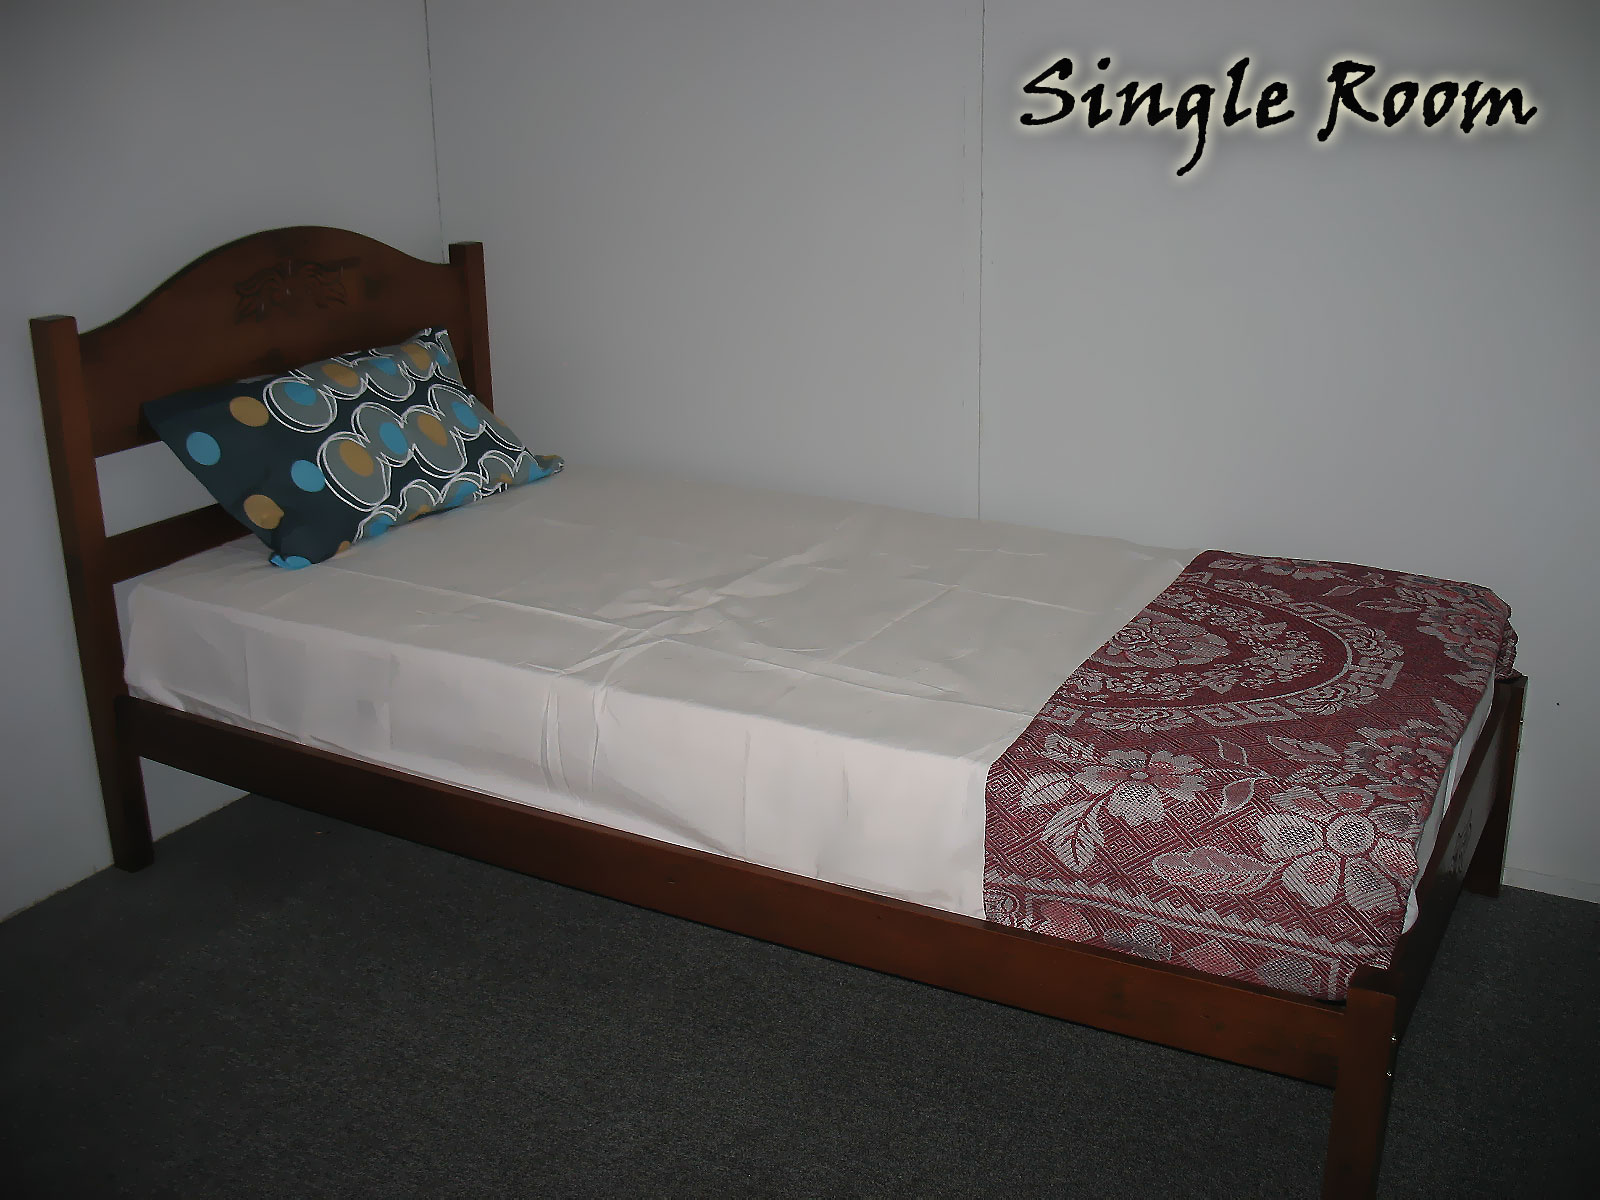 arau divorced singles Available in: dvd even without money problems, many divorced single parents have a hard row to hoe at the drop of a hat, a competent, responsible.